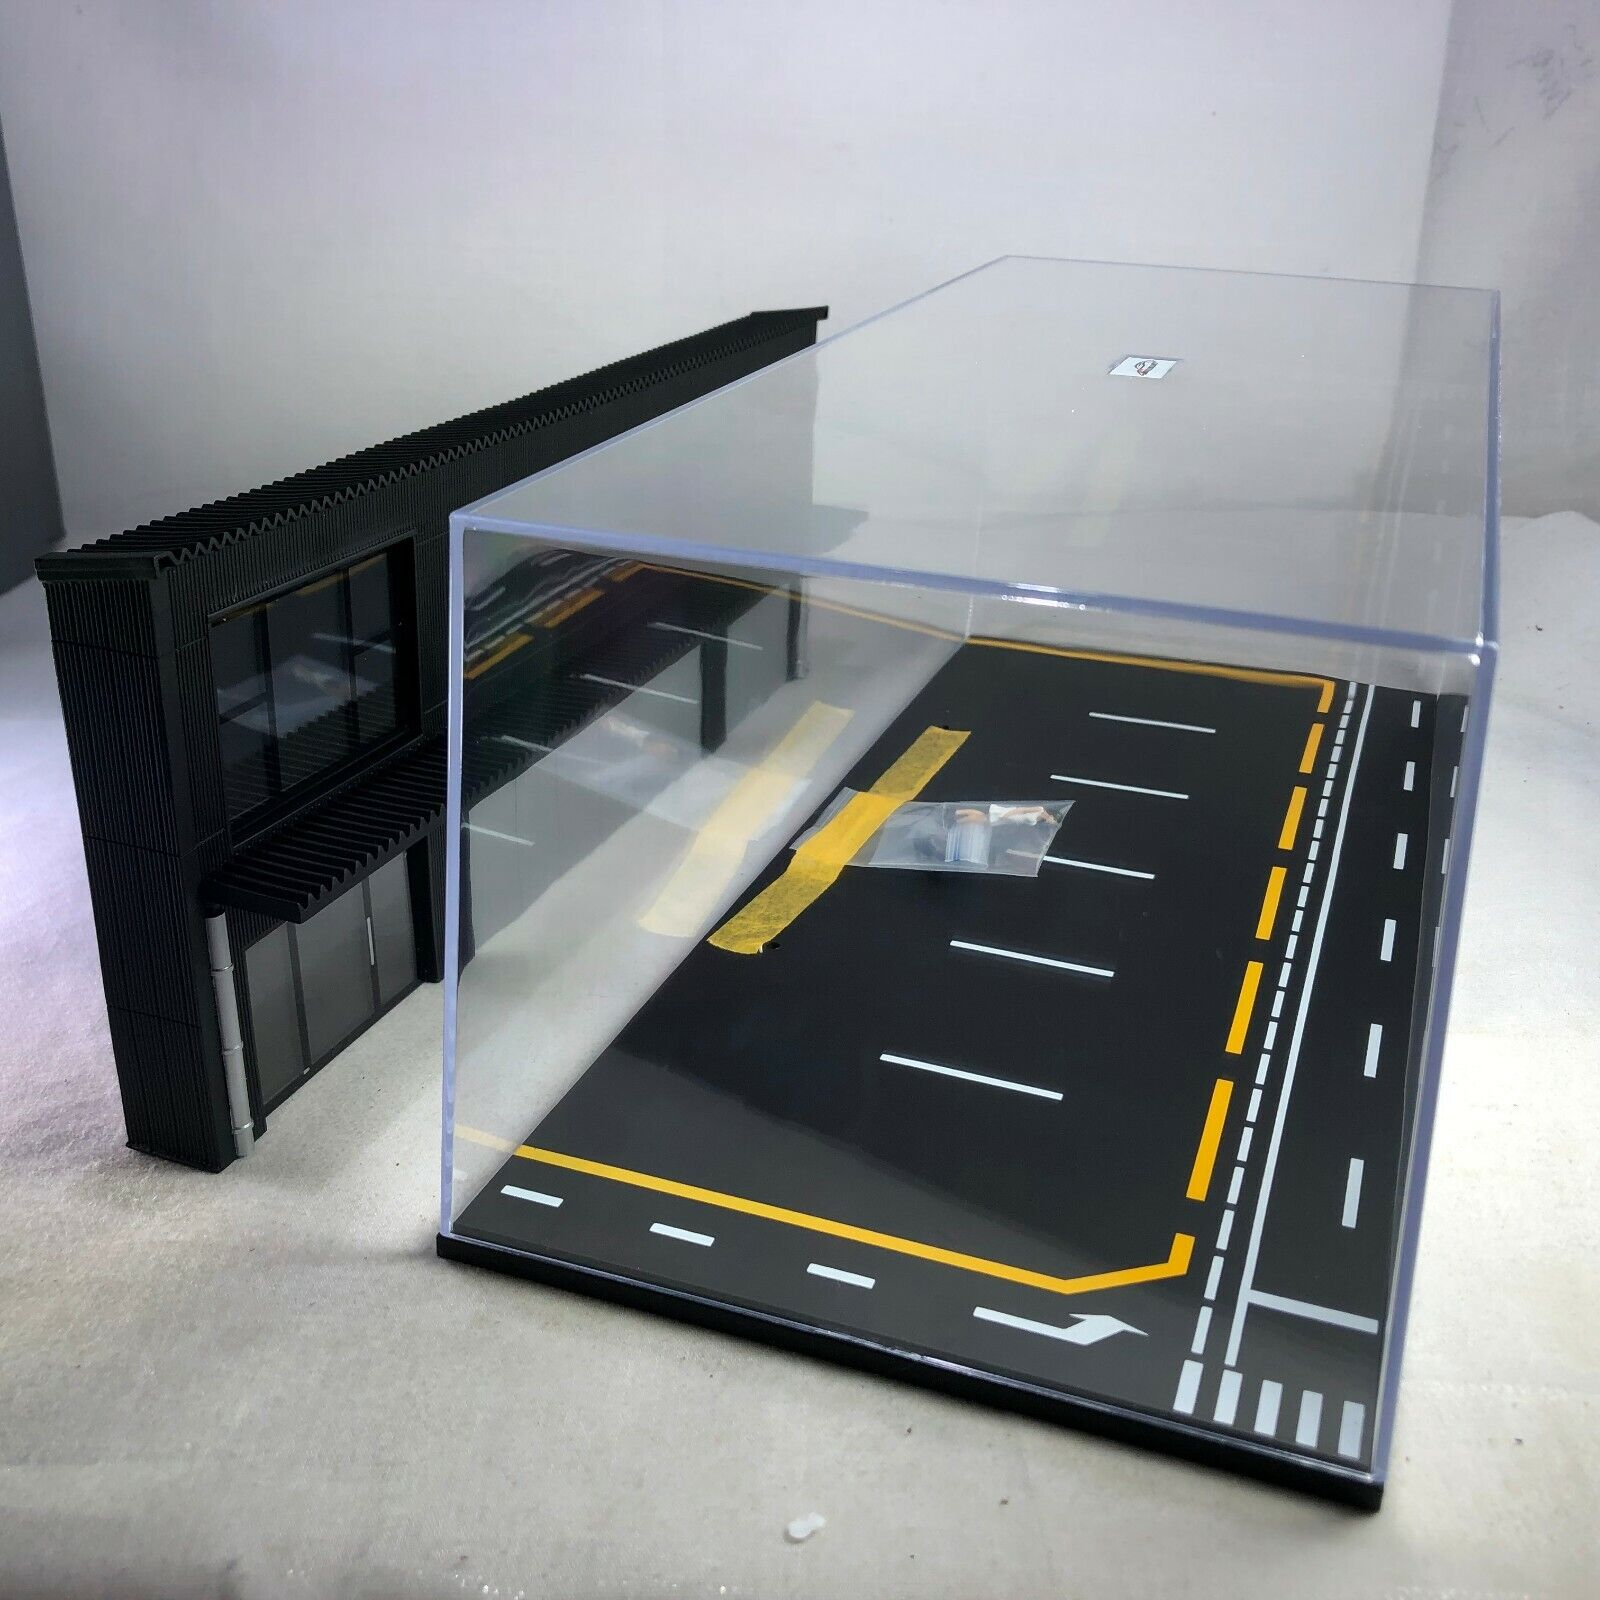 1 64 LB Works modified car shop scene with display case background board and LED